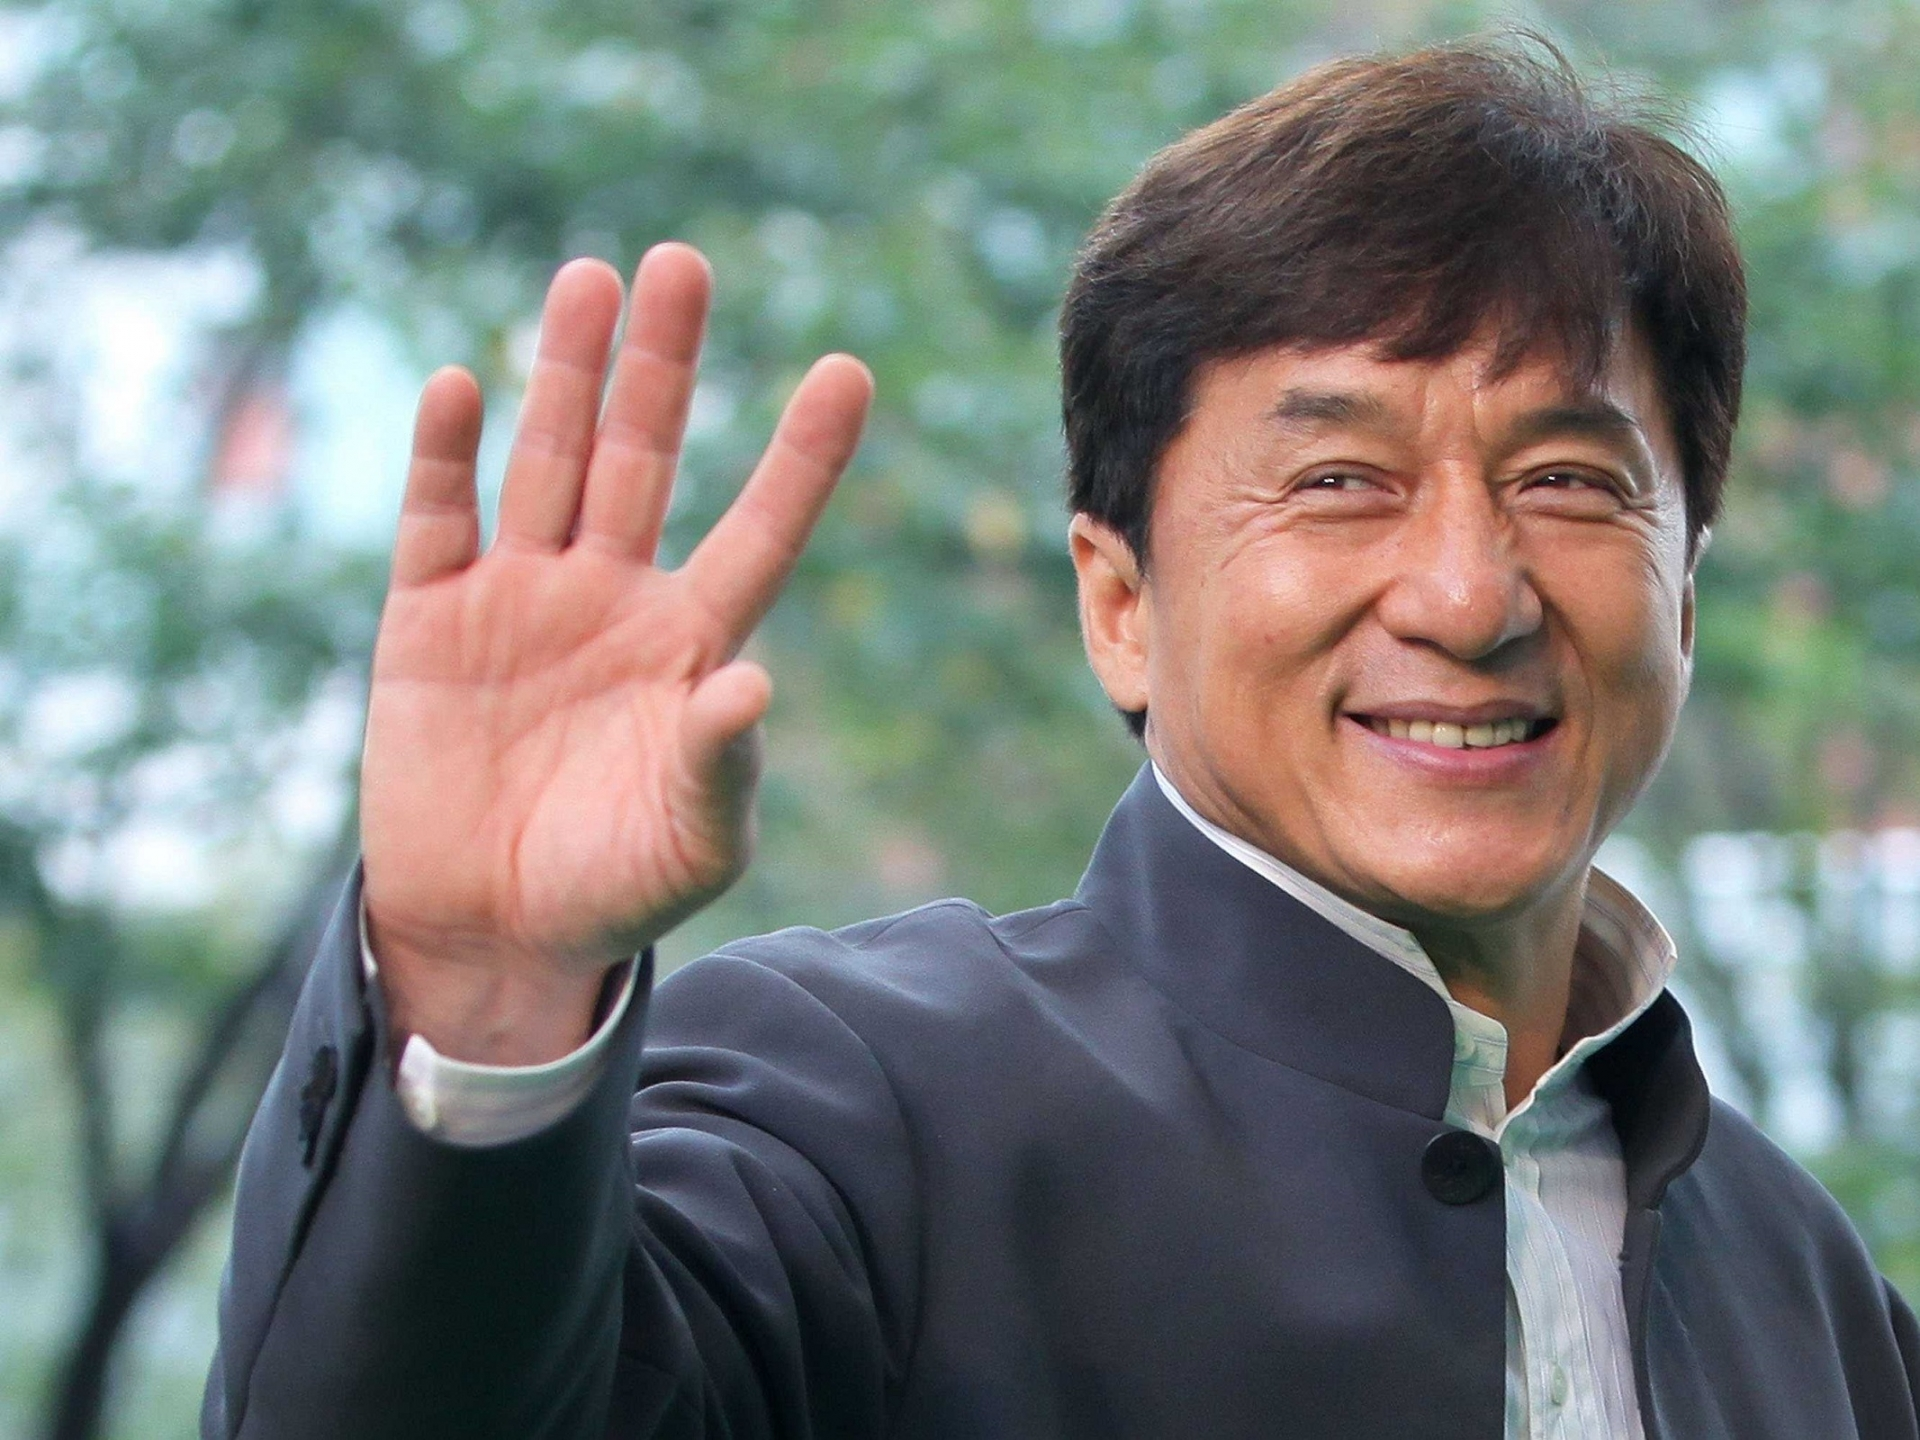 As ambassador for Embraer, Jackie Chan is in a unique position to use this luxury product to grow his empire and do good for many people around the world